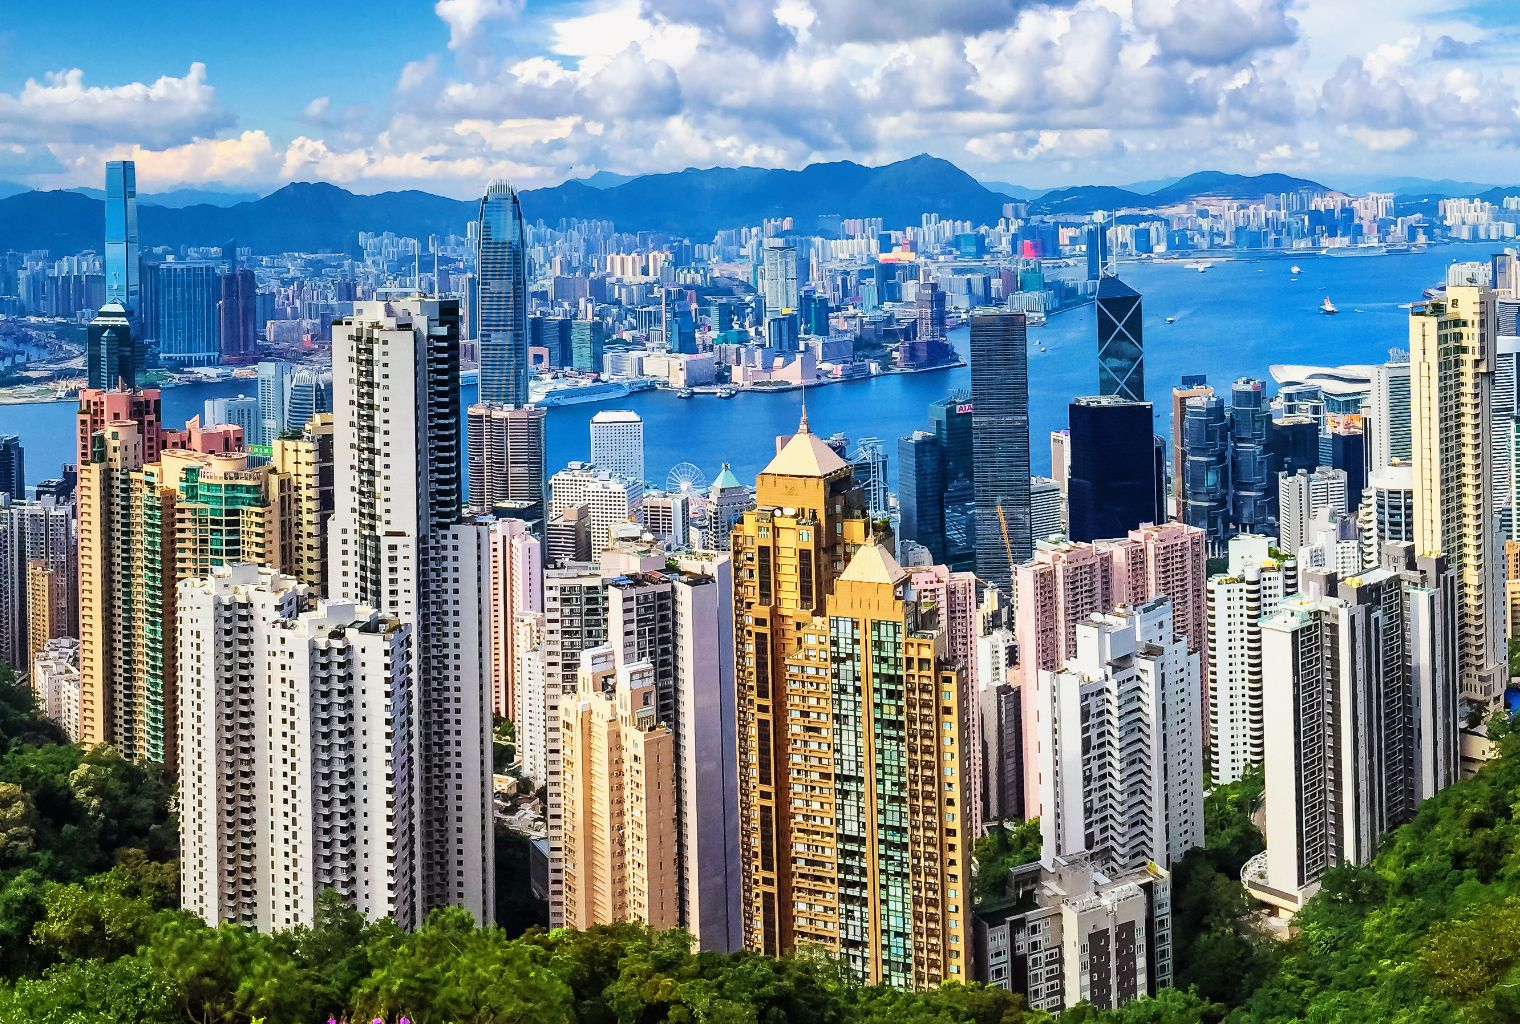 Hong Kong S Securities And Futures Commission Has Established A